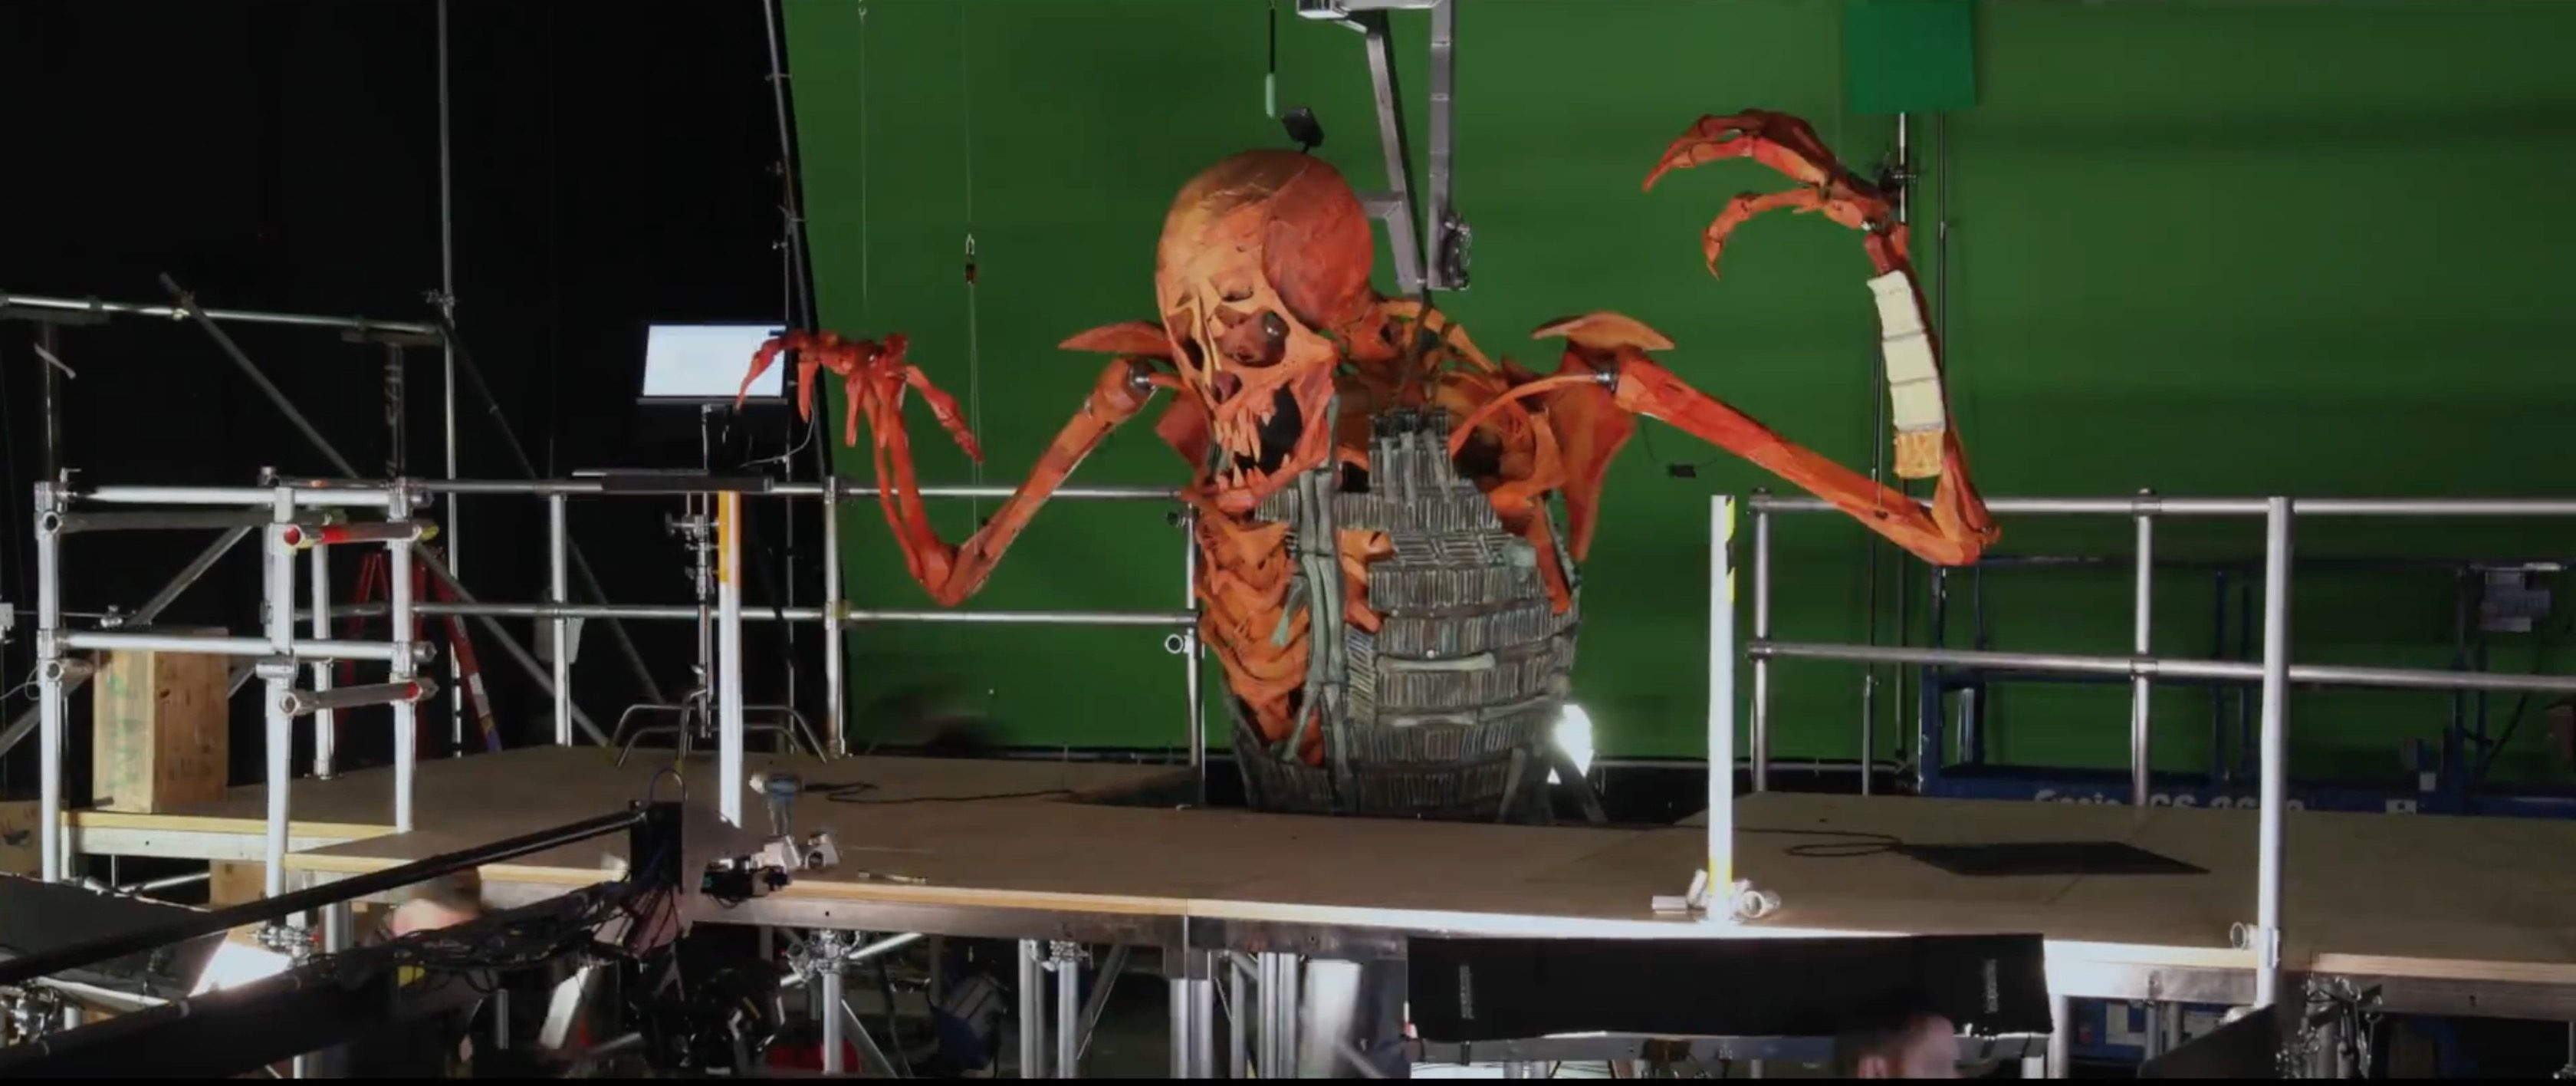 Making of Kubo and the Two Strings